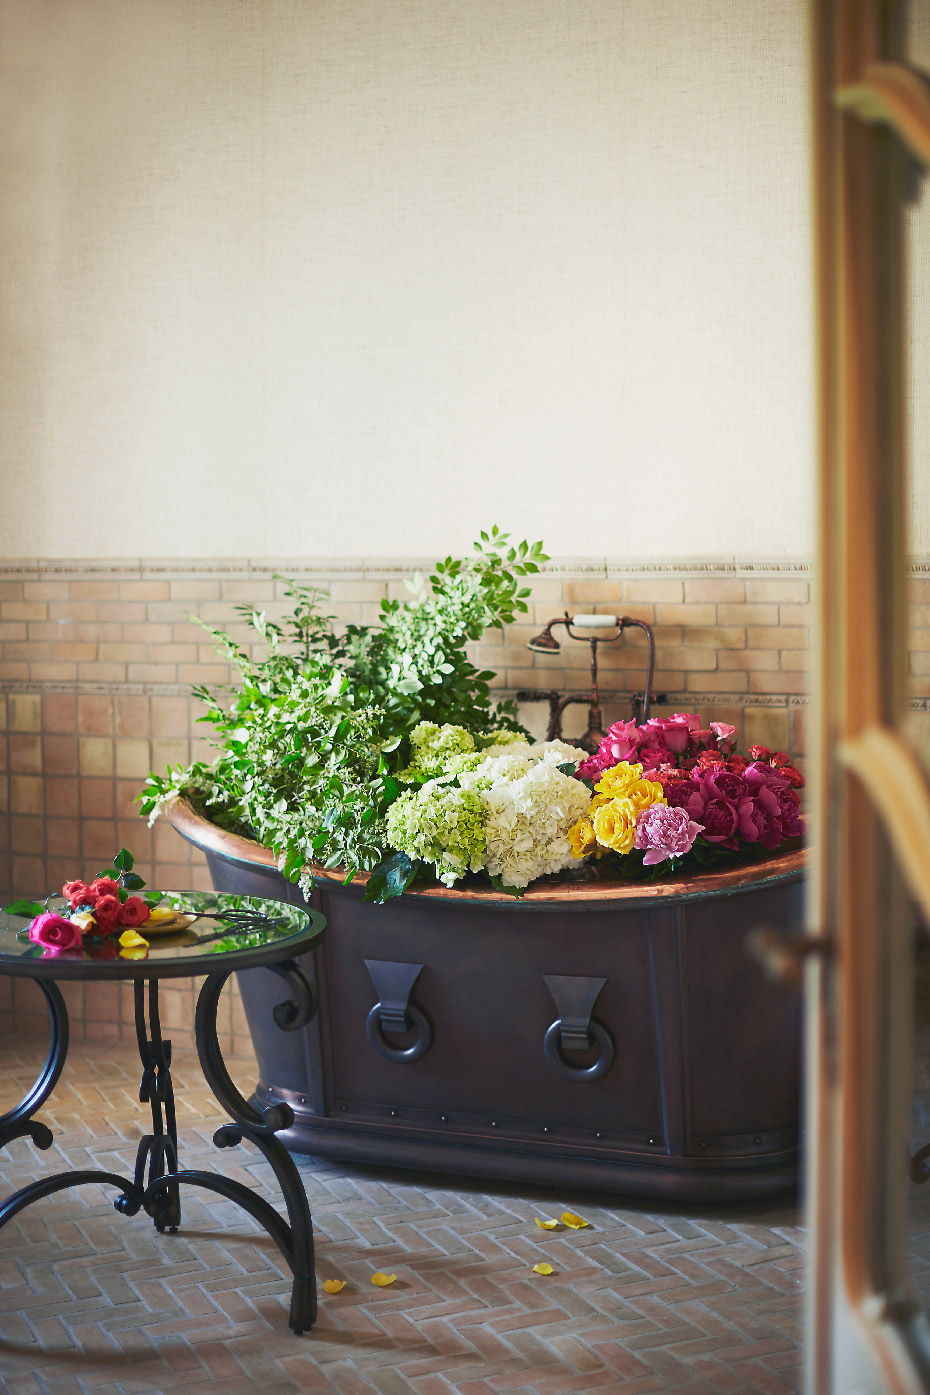 Stacey Van Berkel Photography I Copper tub full of beautiful flowers I Bernhardt Furniture